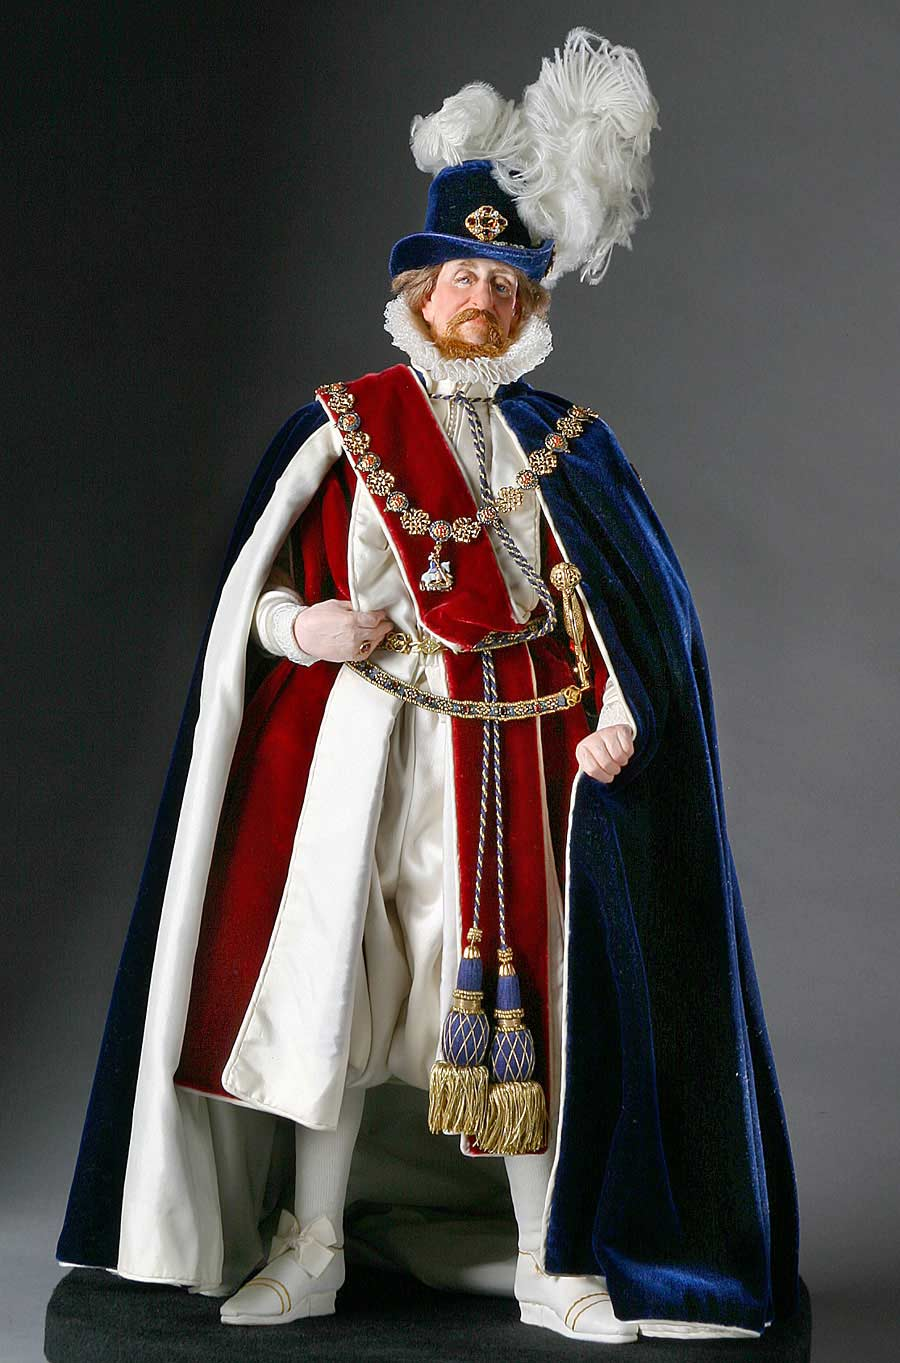 Full length color image of James I aka. James I of England, James VI of Scotland, The Second Solomon, by George Stuart.